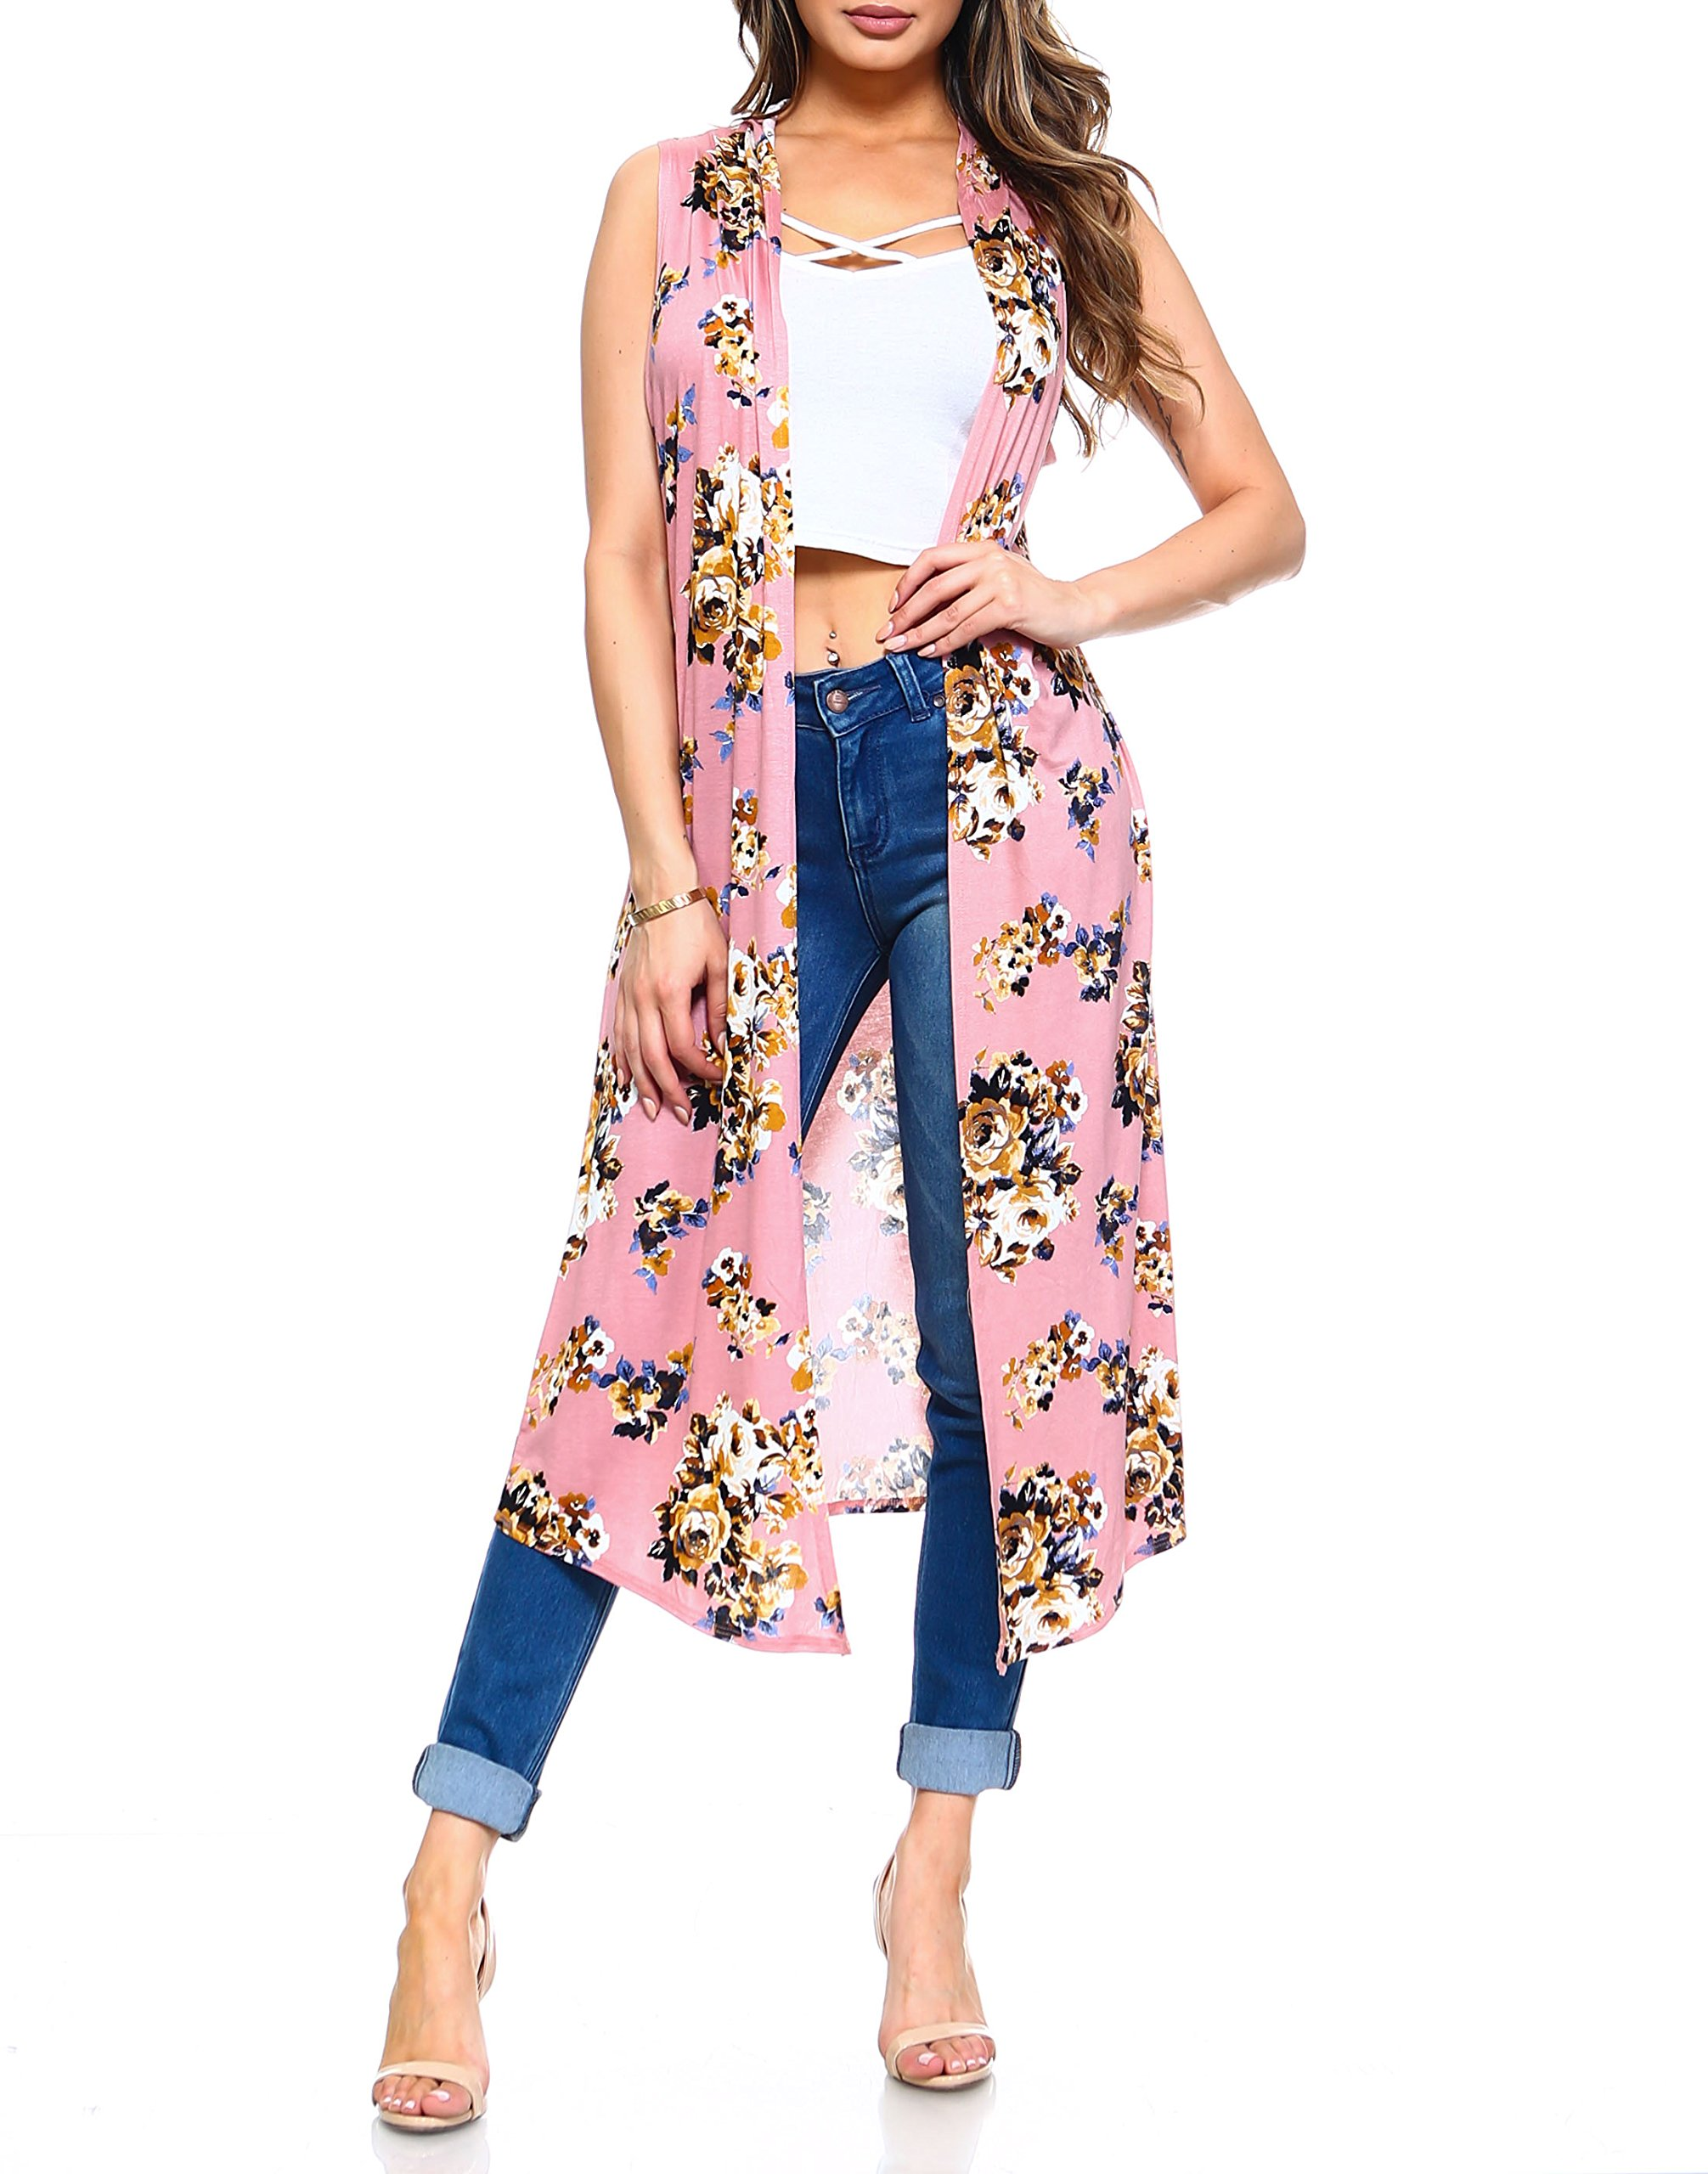 Isaac Liev Women's Floral Long Lightweight Cardigan Duster Vest (Pink Floral, Small)